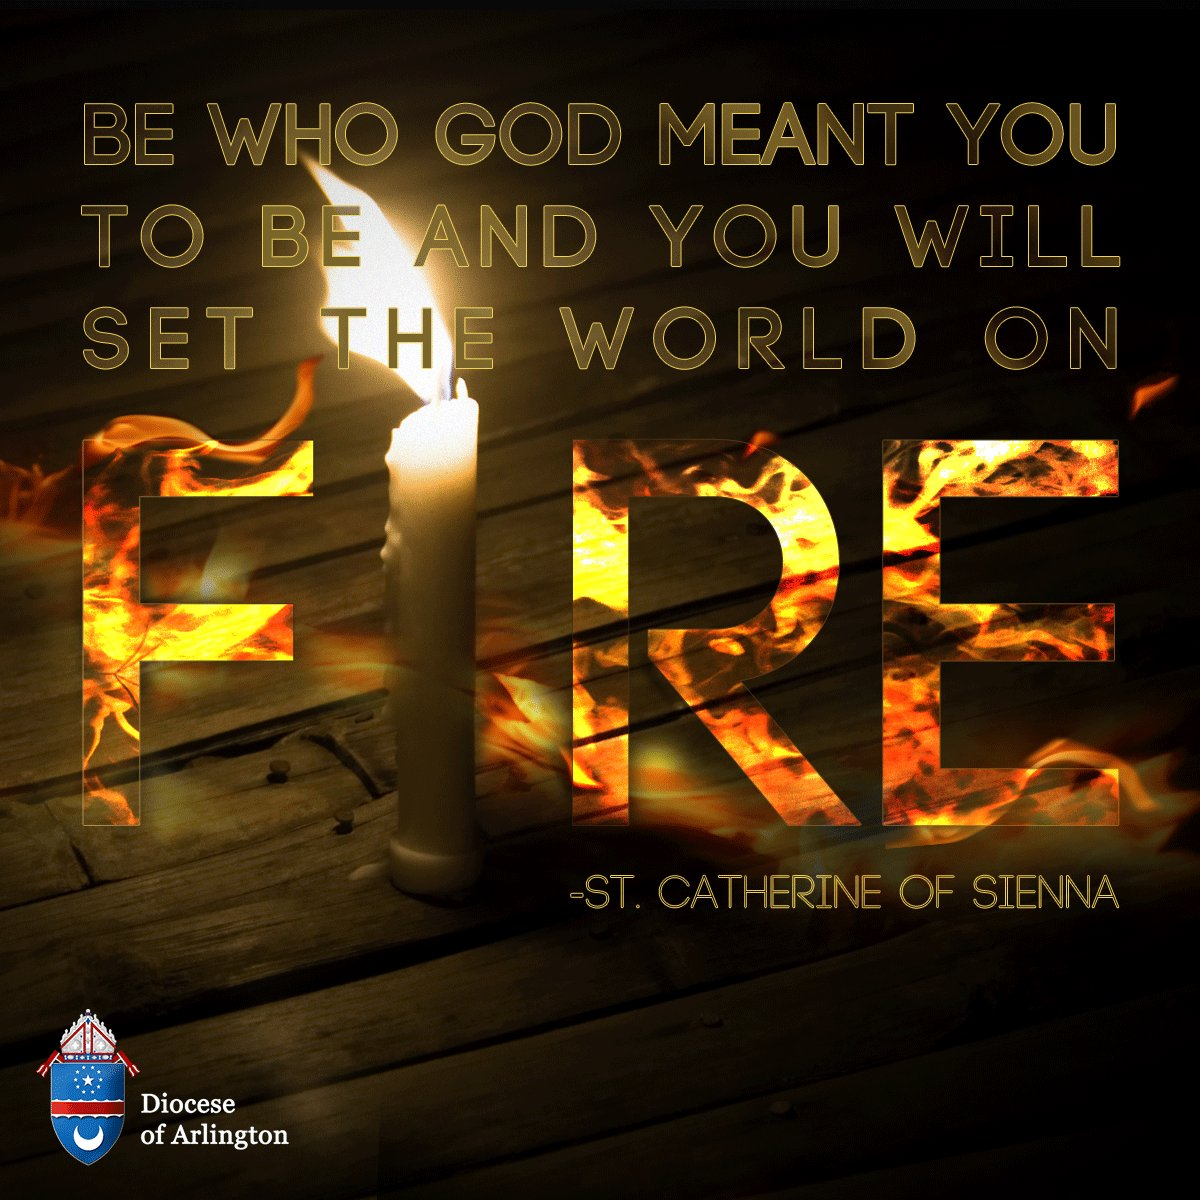 """""""Be who God meant you to be and you will set the world on fire."""" —Saint Catherine of Siena #Prayforus! #Feast https://t.co/6UgKl7L5Mz"""